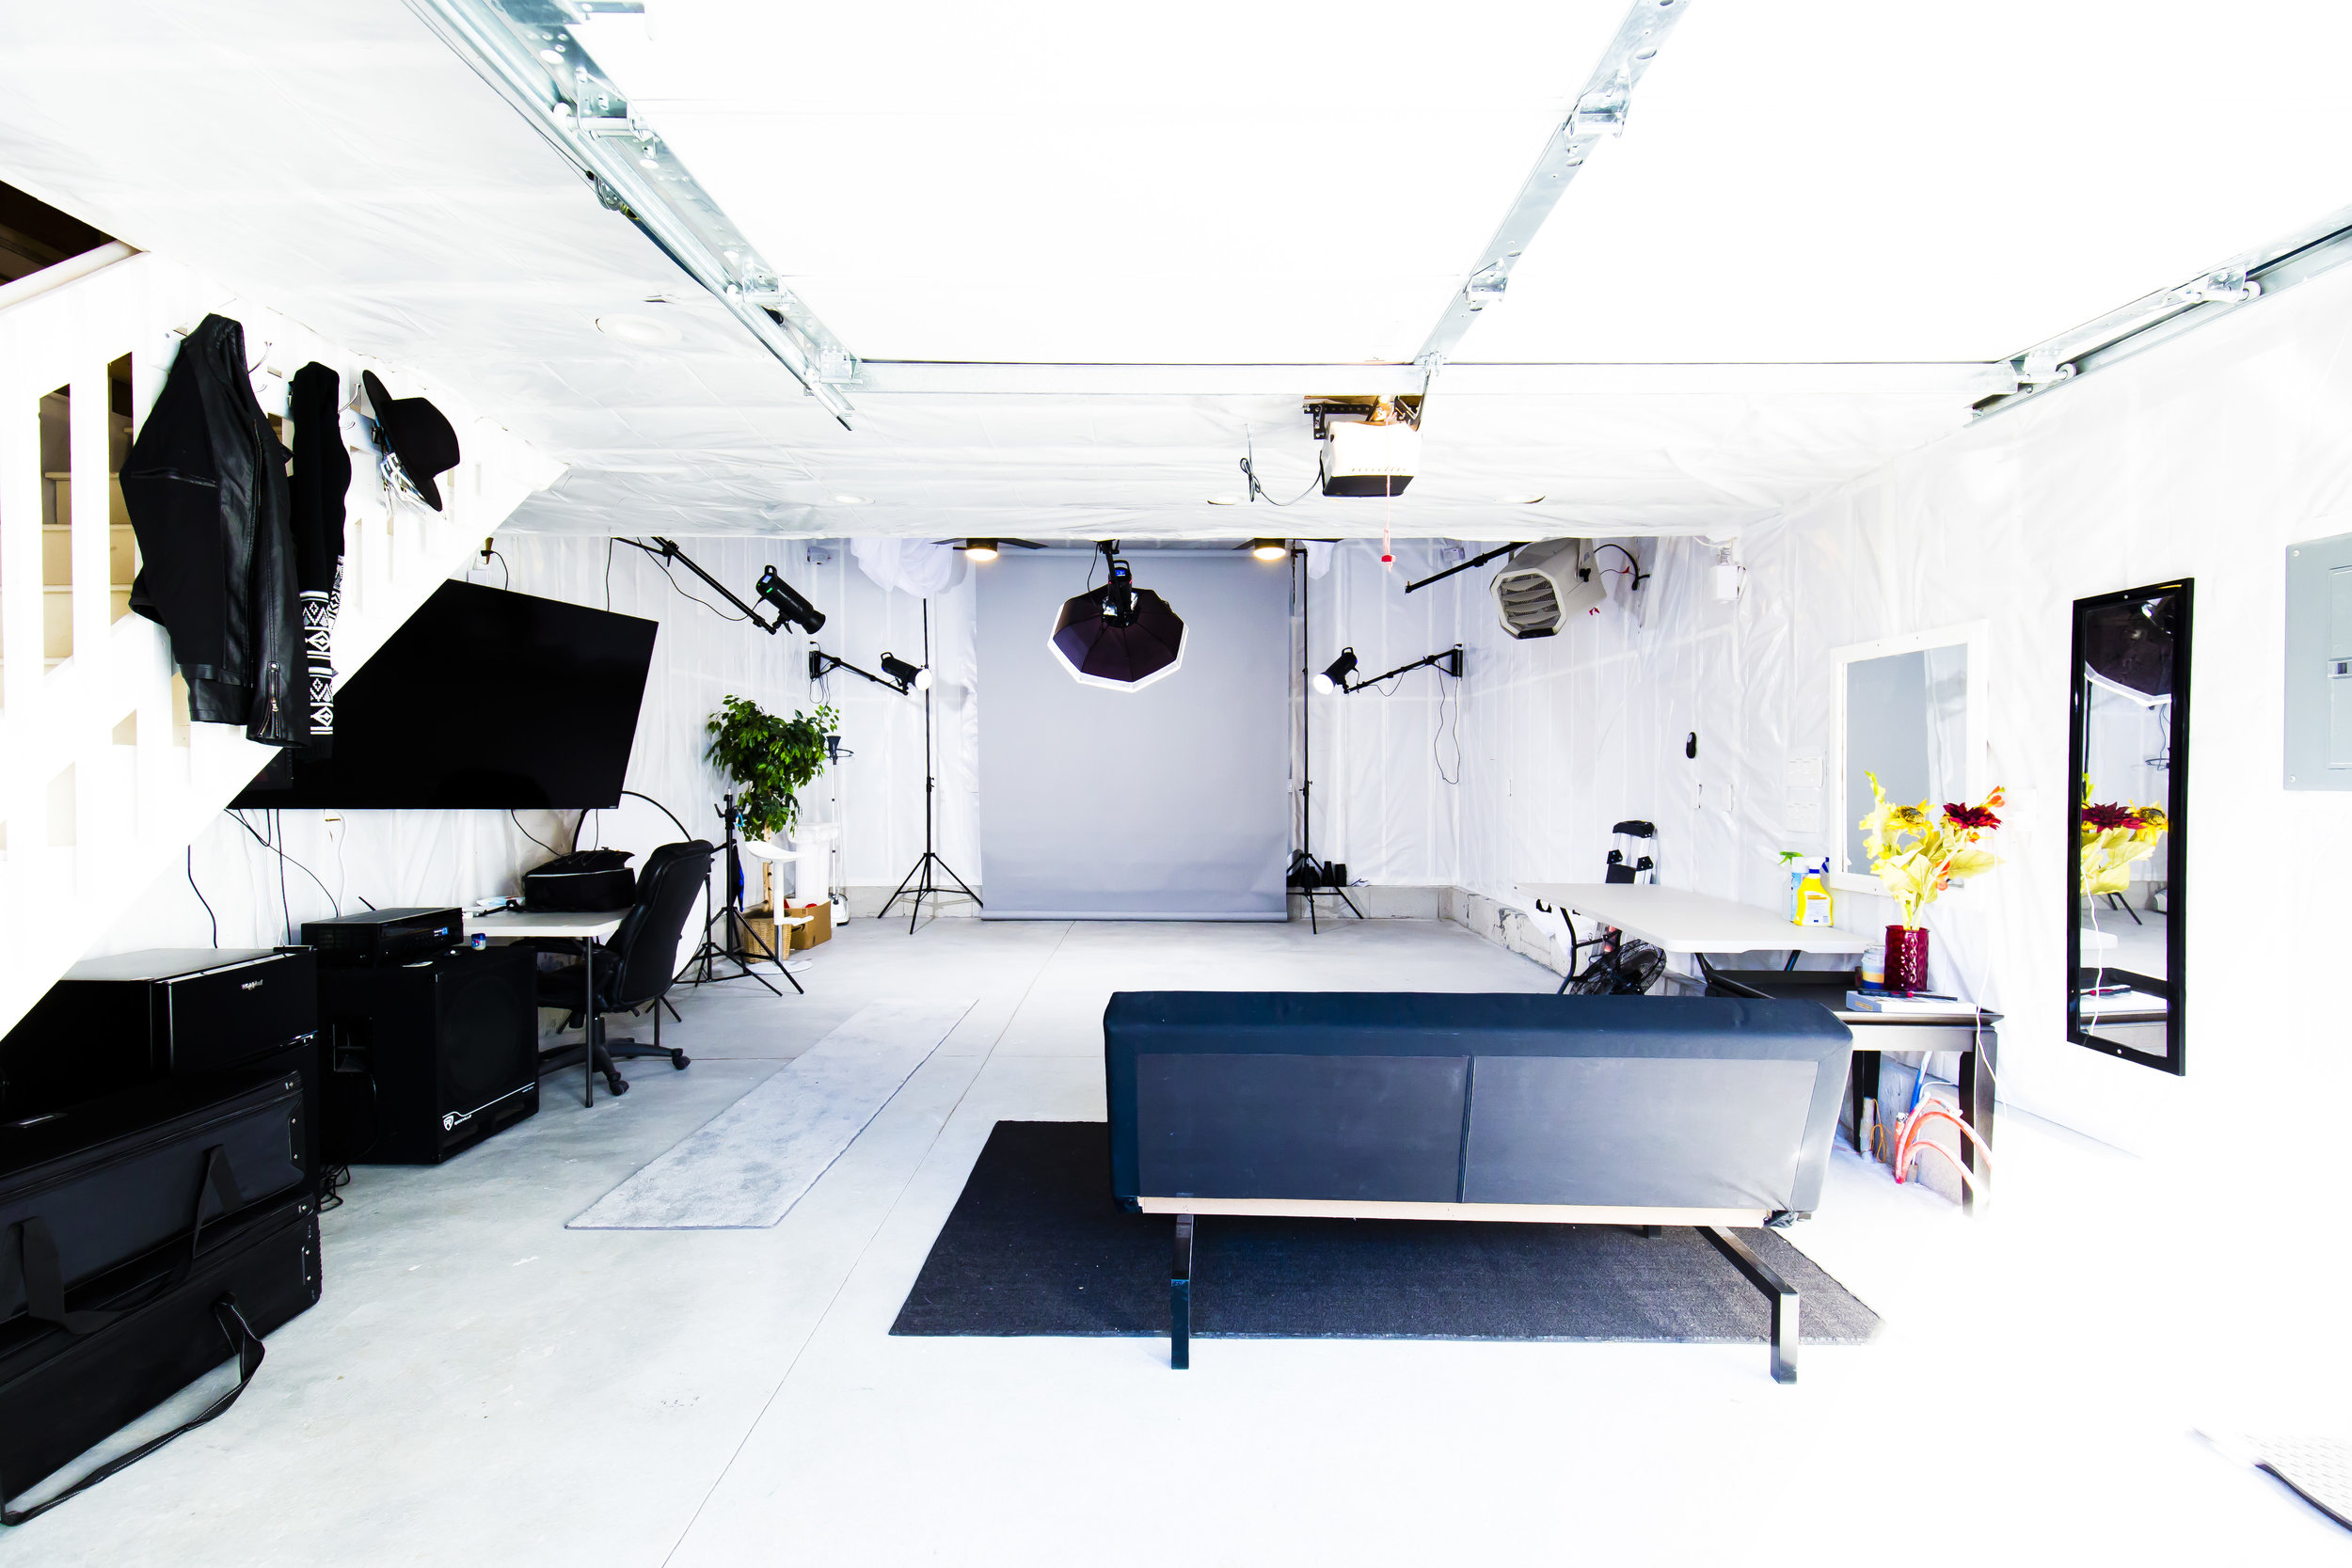 314A1171-Boston Studio Rental-Photography - Videography - Film - Event space - Affordable.jpg